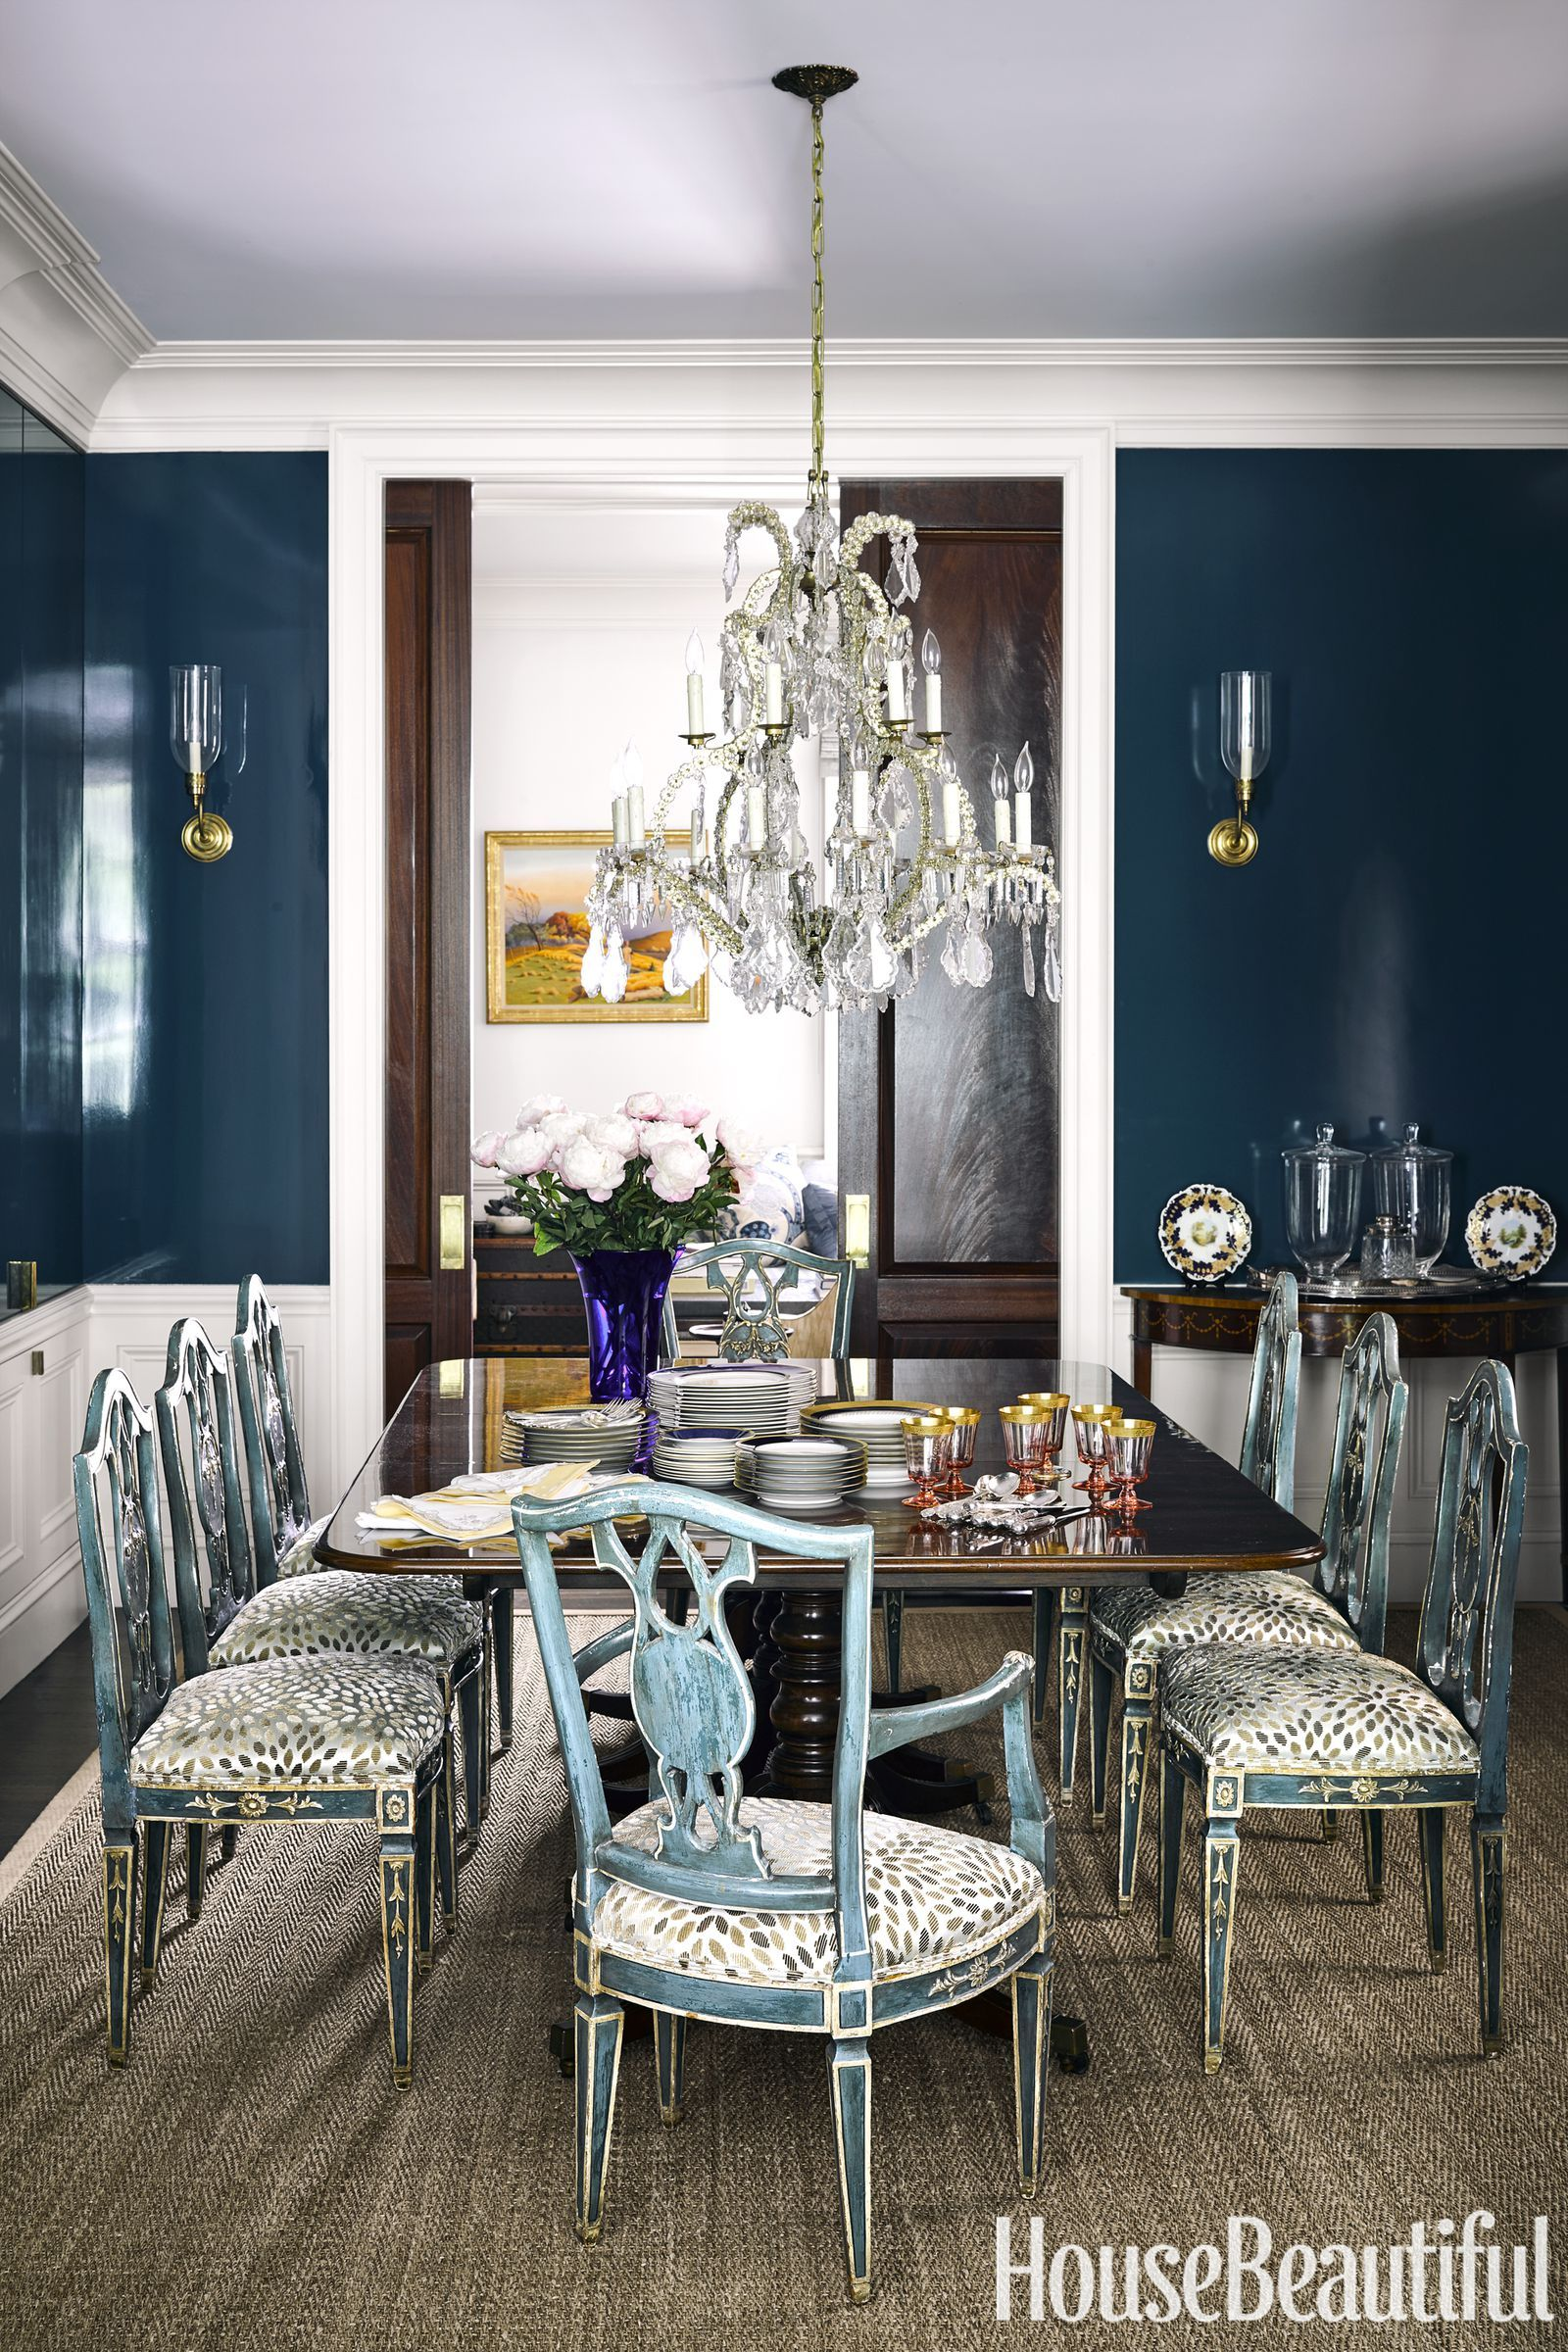 Midnight Blue Reigns in This Glamorous Fifth Avenue ...